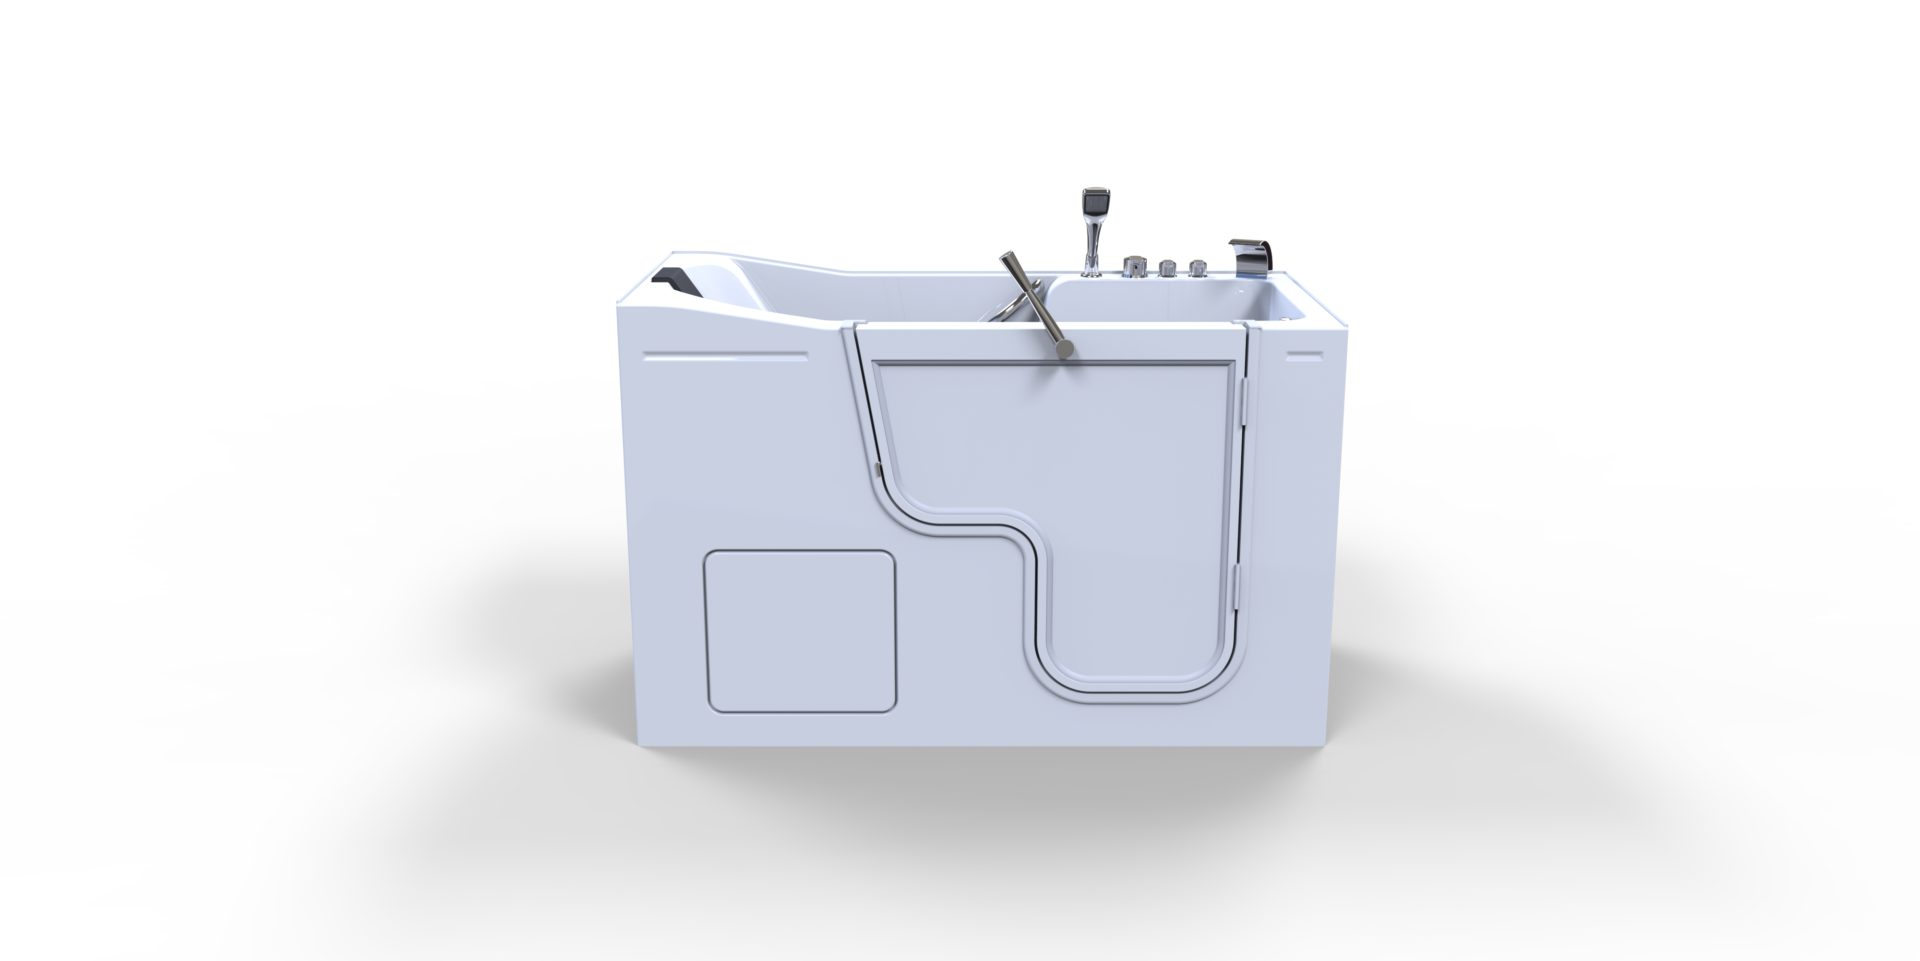 3d model of Oasis style walk-in bathtub, door closed, no water, from side